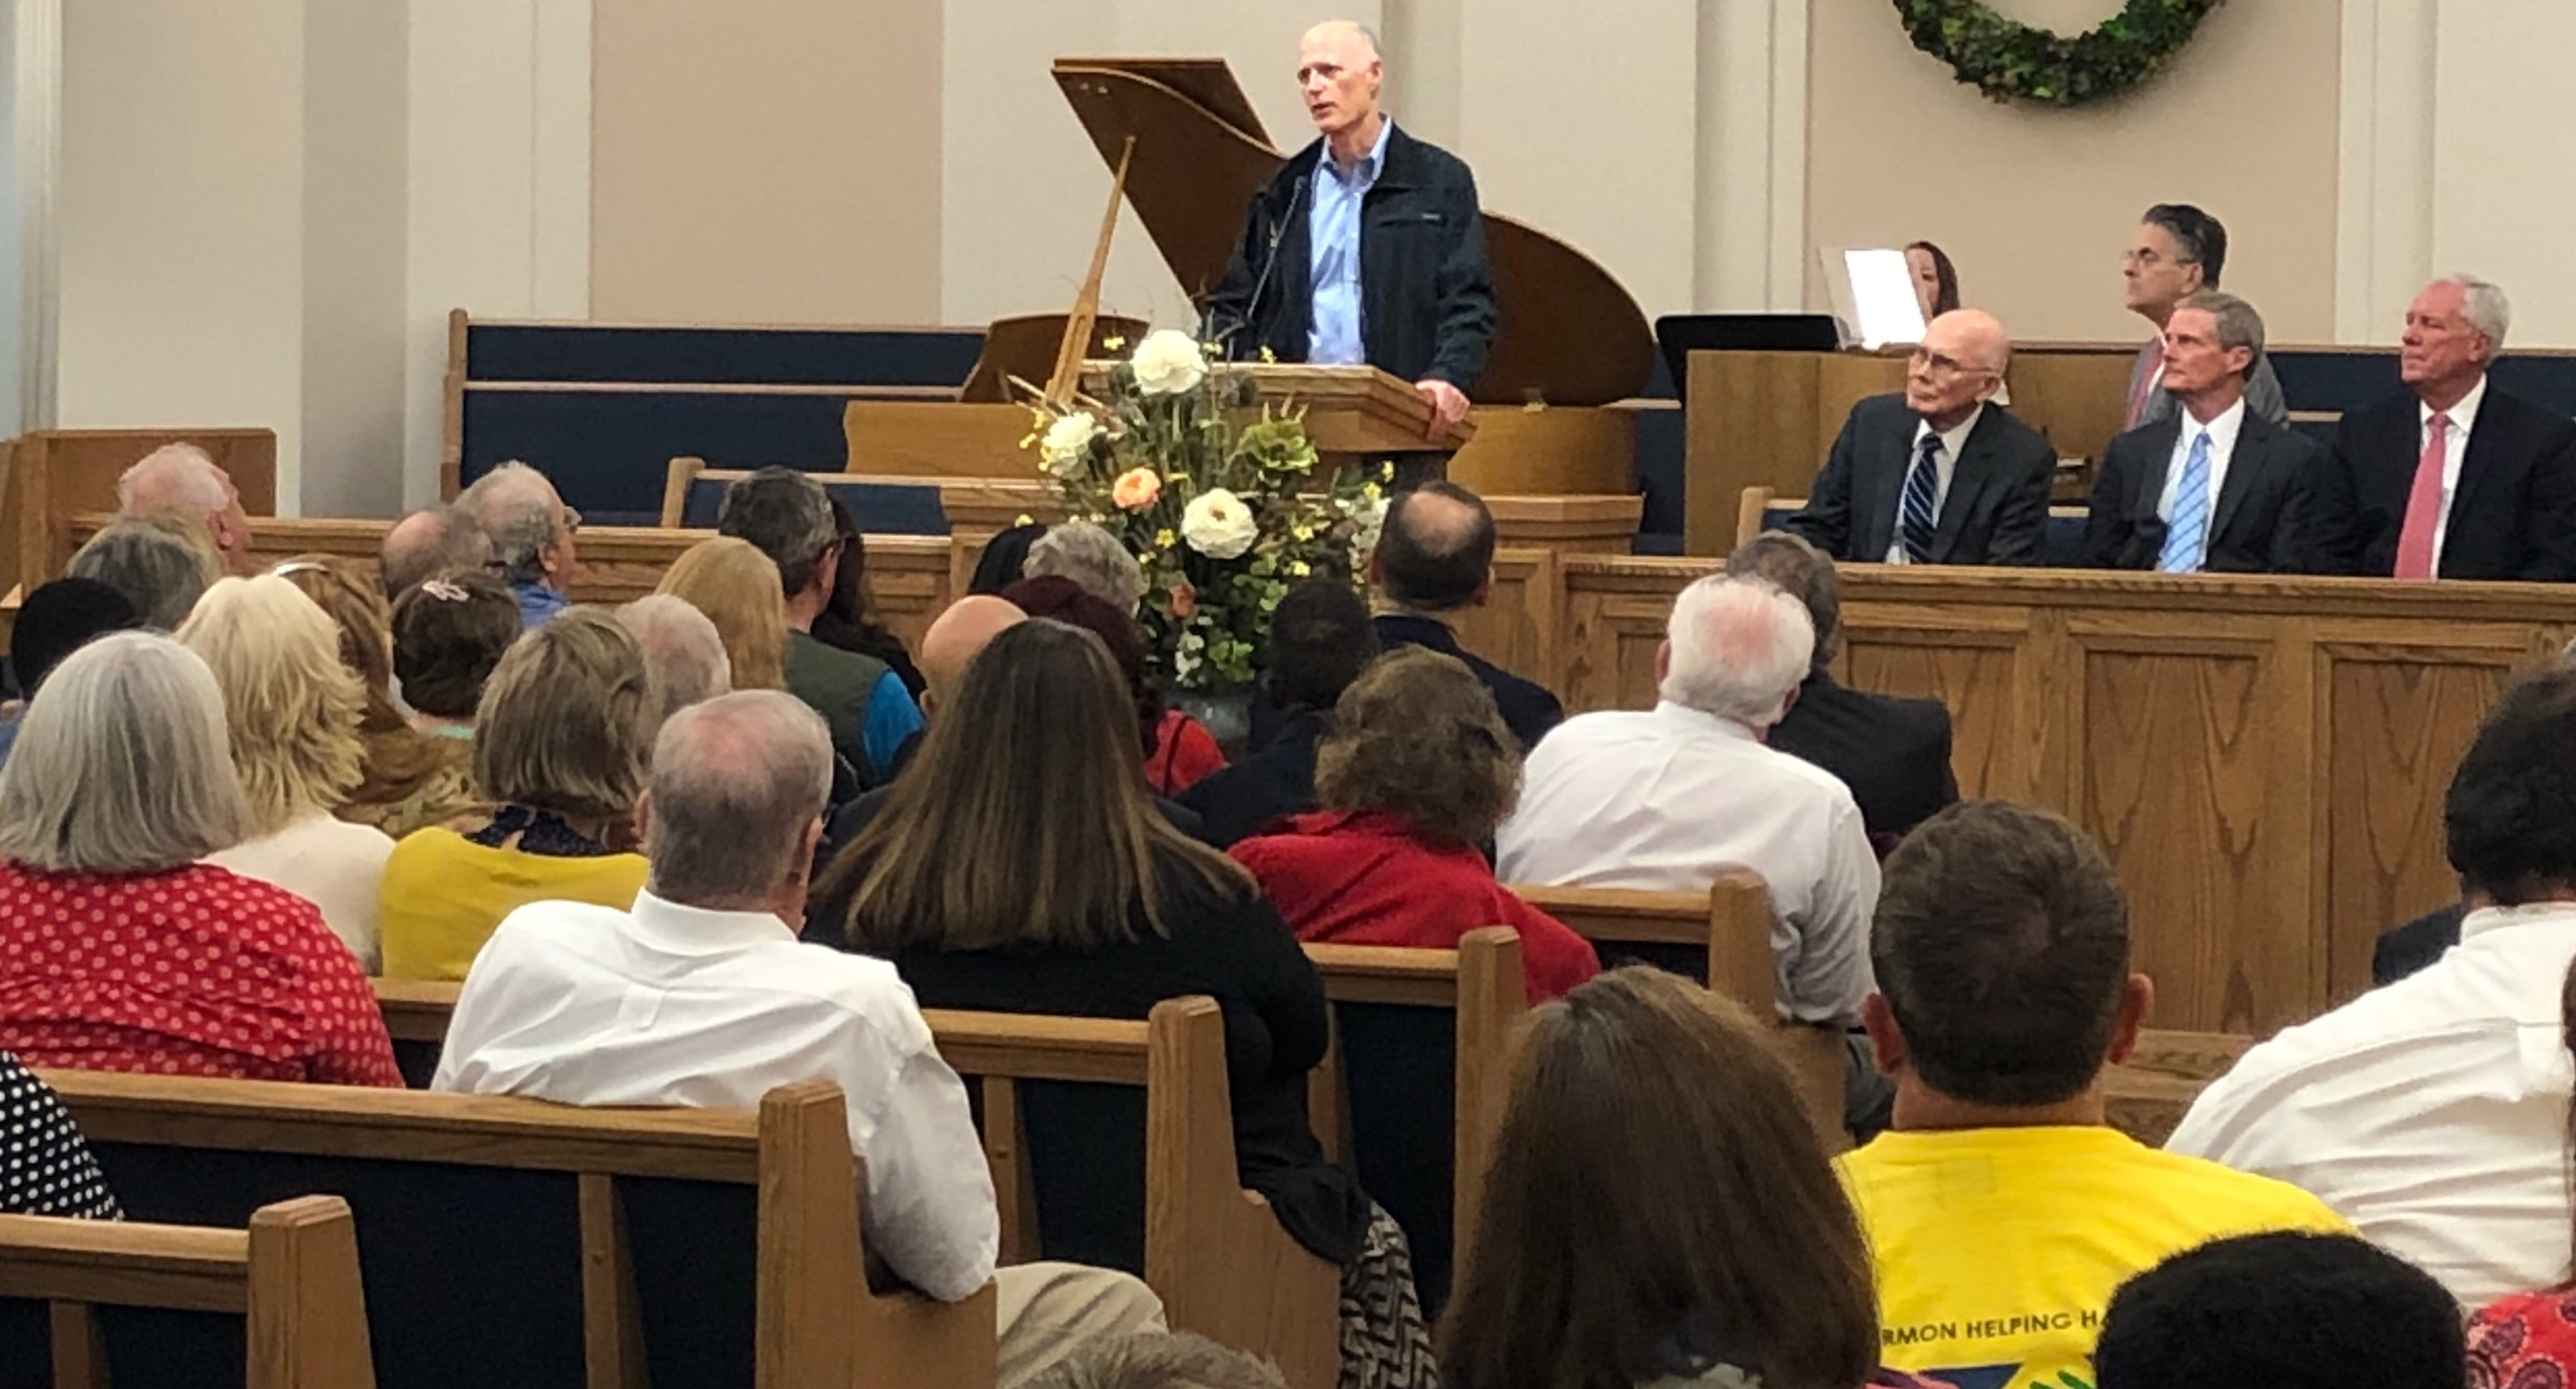 Florida Gov. Rick Scott thanks Latter-day Saints for their ongoing efforts to provide relief to those impacted by Hurricane Michael a few minutes prior to a member devotional at the Florida Tallahassee Stake Center. President Dallin H. Oaks and Elder David Bednar, seated on the podium, participated in the devotional, along with several other leaders of The Church of Jesus Christ of Latter-day Saints in the Oct. 20, 2018, event.